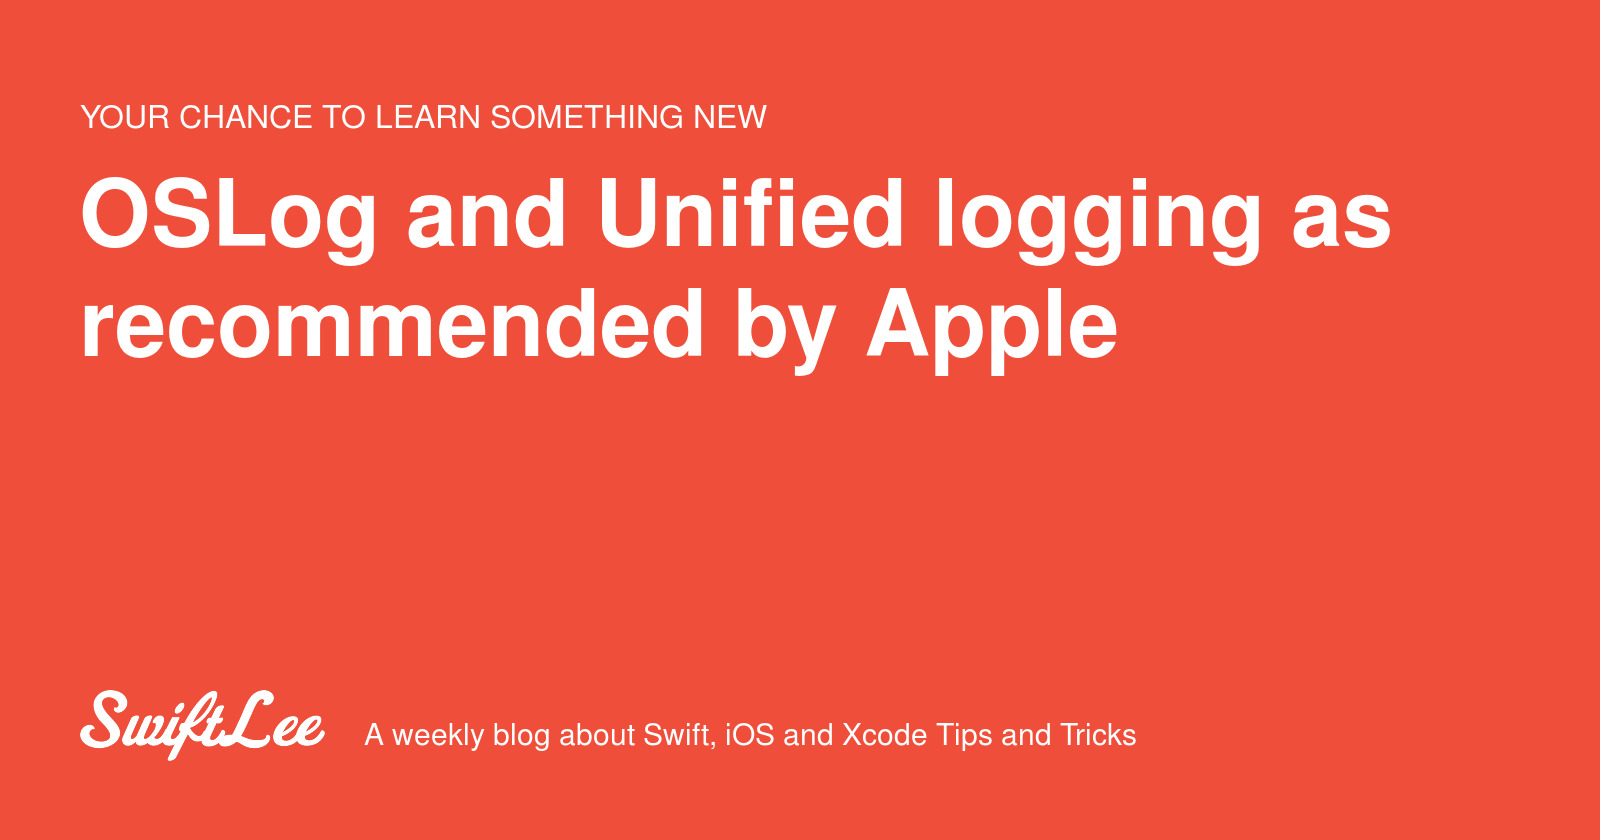 OSLog and Unified logging as recommended by Apple